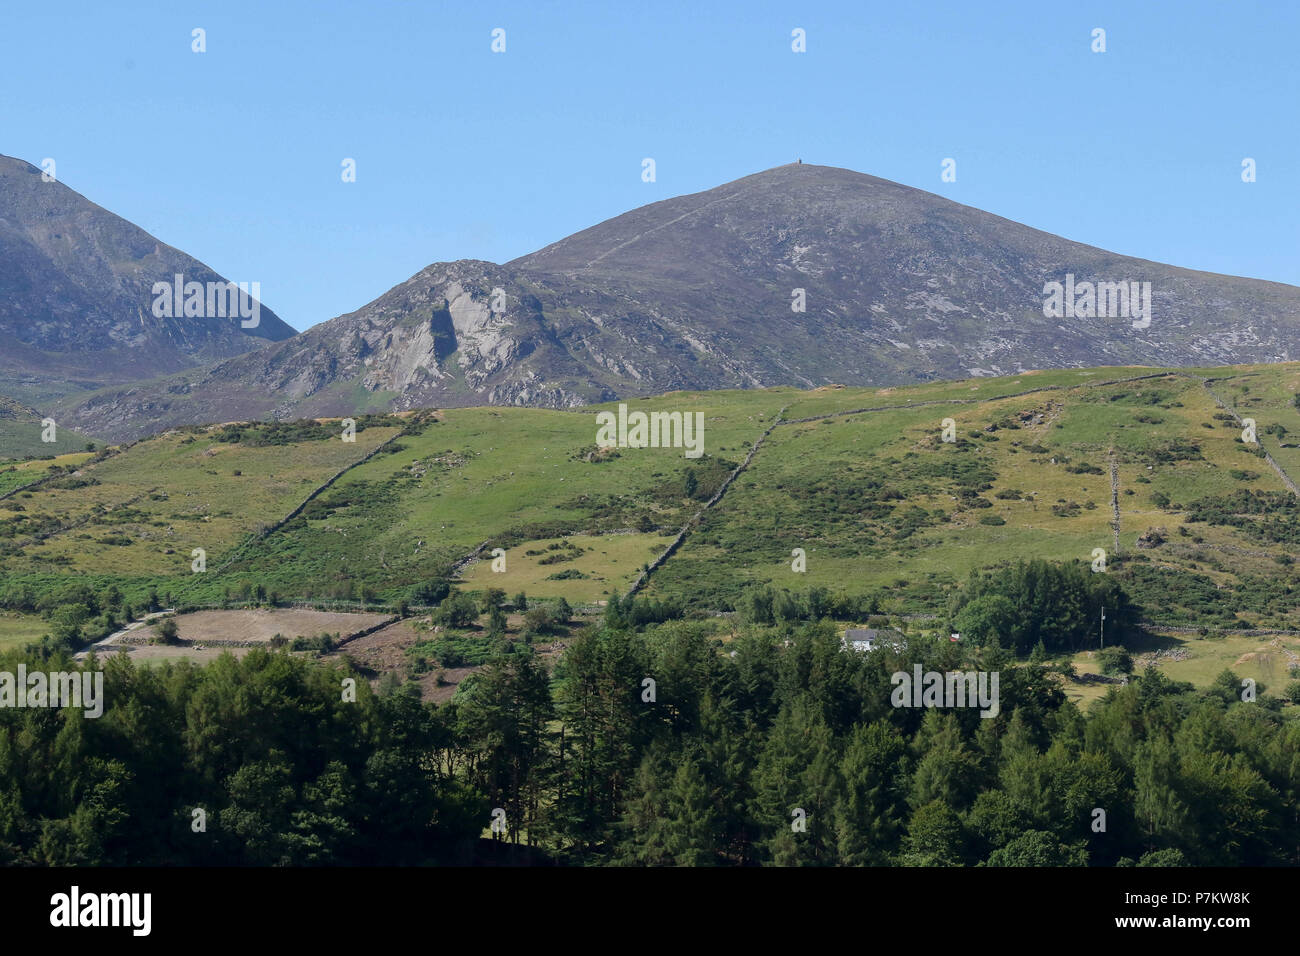 Mountains of Mourne, County Down, Northern Ireland. 07 July 2018. UK weather - warm with sunny periods and variable cloud in the Mournes as the warm dry settled weather continues. The Mournes and Slieve Meelmore on yet another warm summer day. Credit: David Hunter/Alamy Live News. - Stock Image